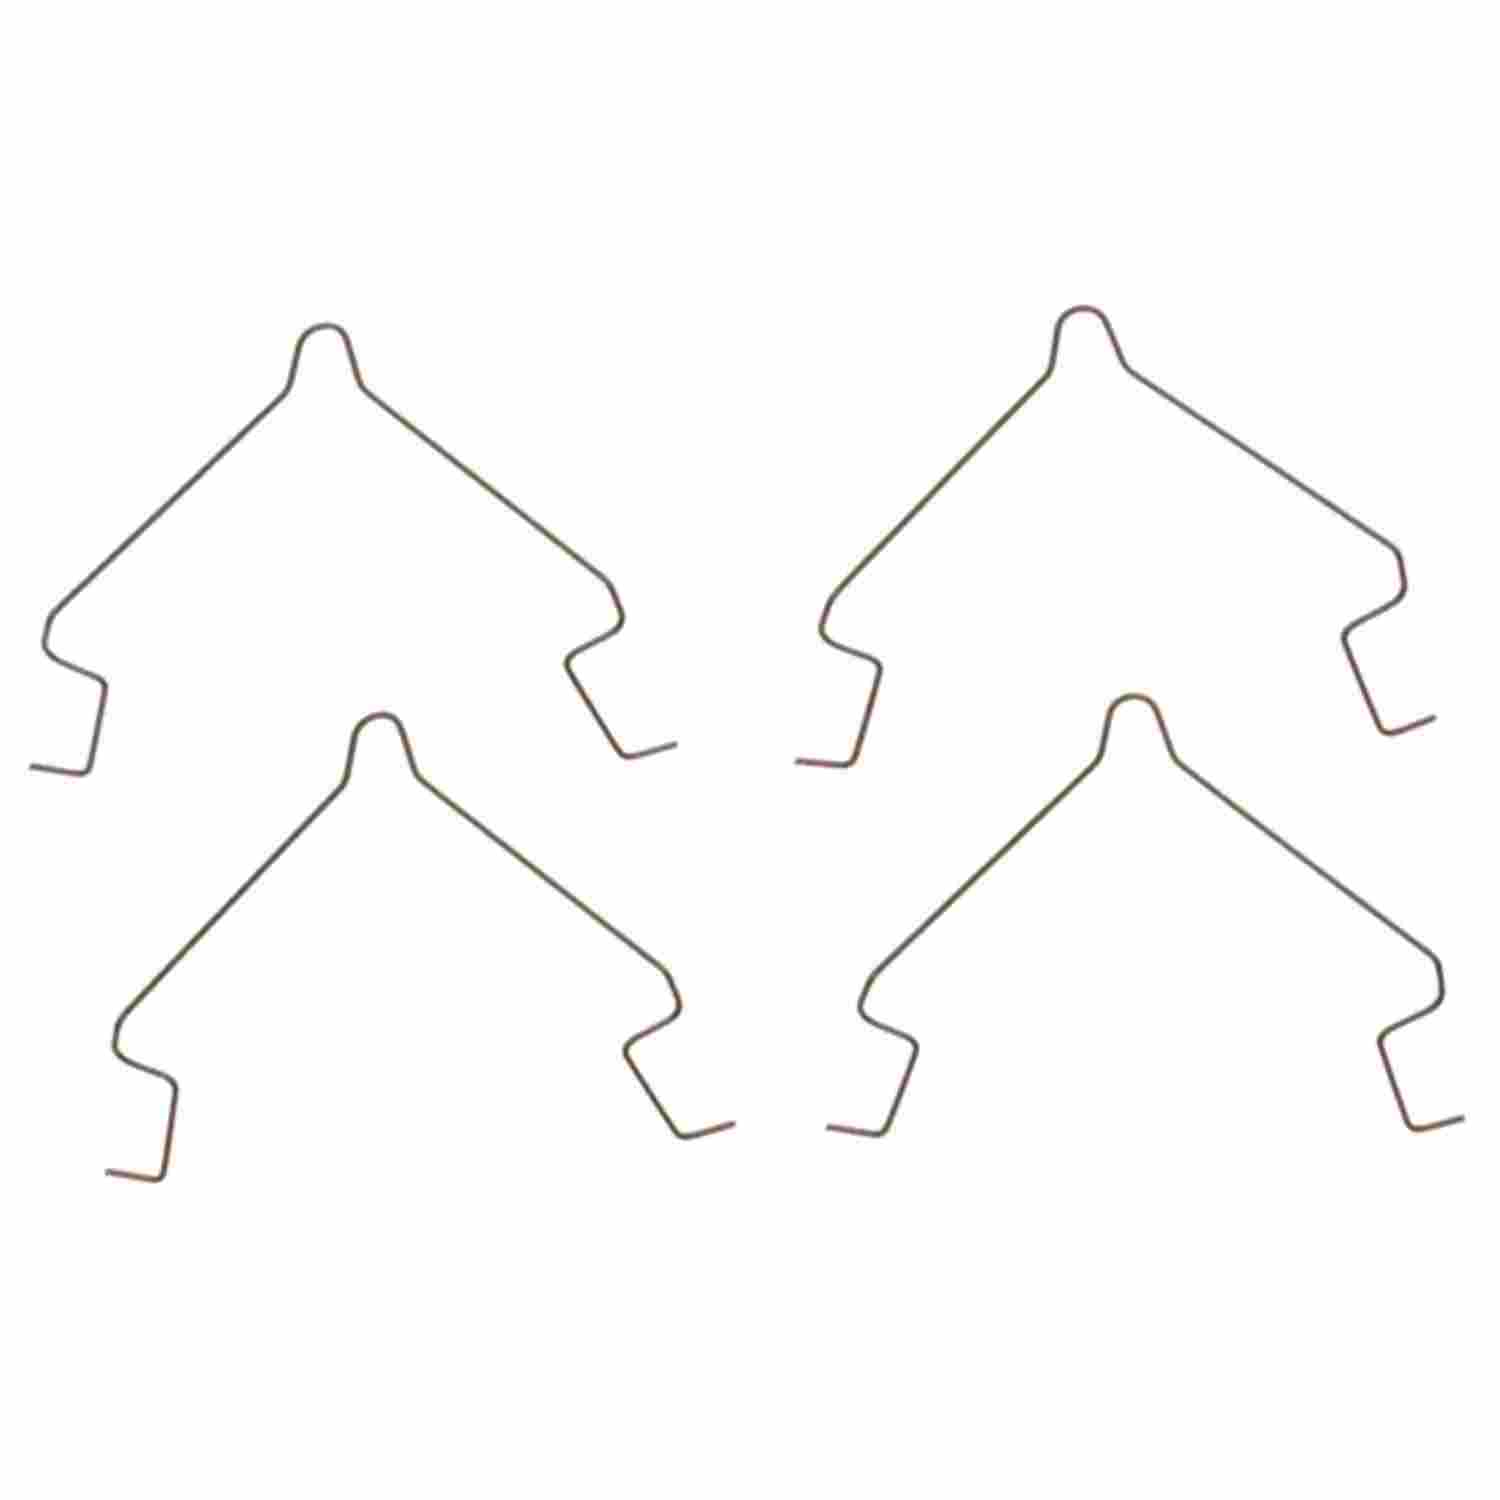 ACDELCO PROFESSIONAL BRAKES - Disc Brake Pad Drag Reduction Clip (Front) - ADU 18K1005SS